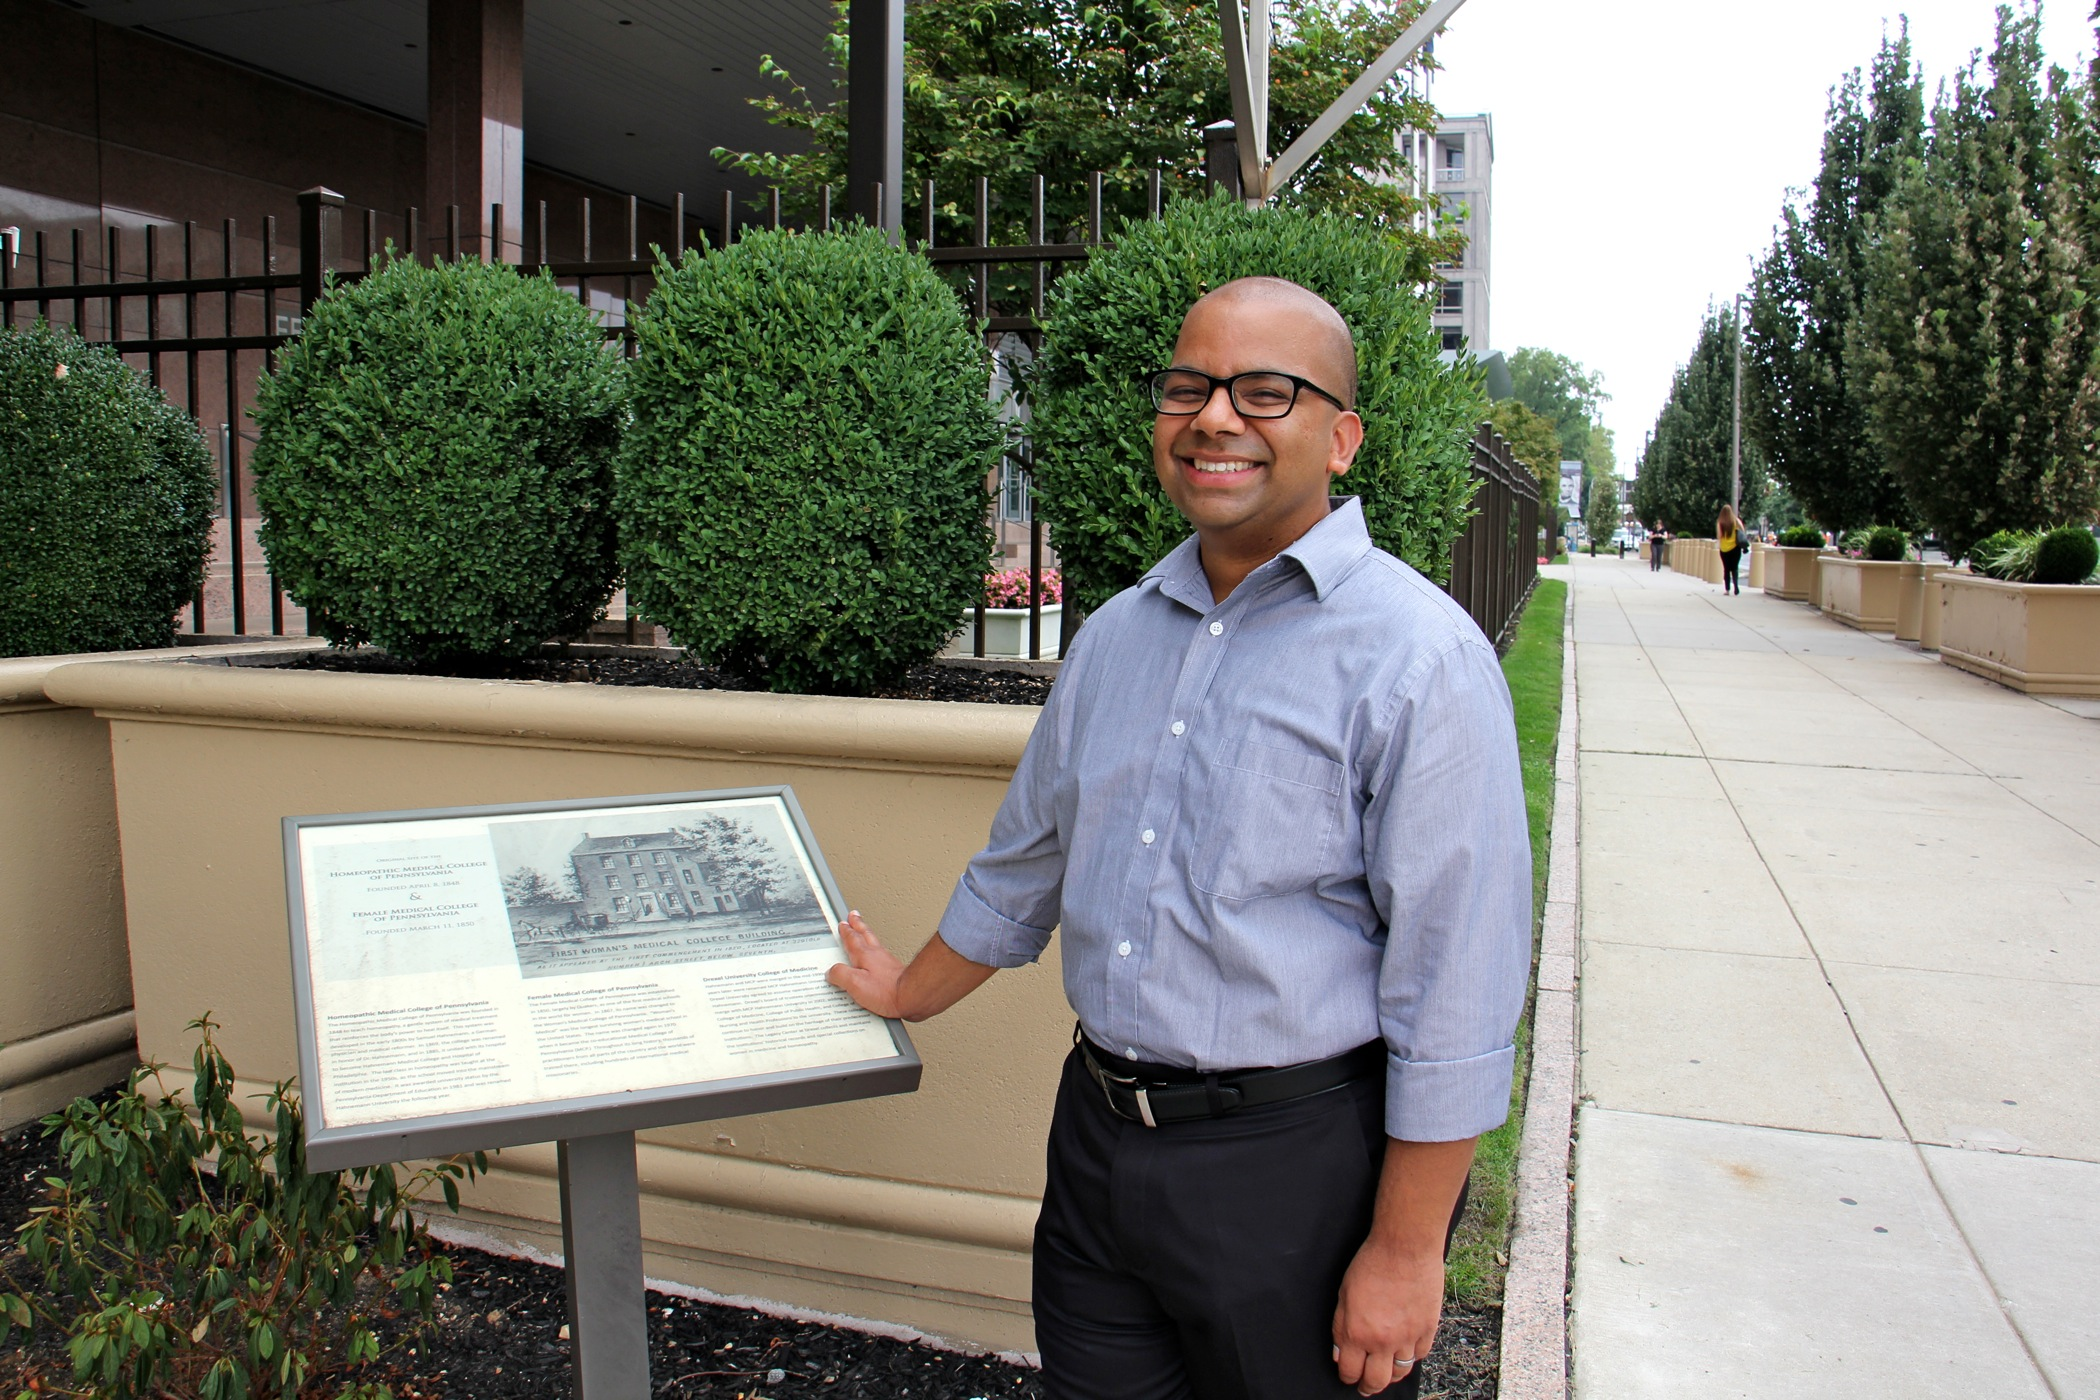 Coming soon: Audio walking tour of Philly's South Asian history, set to new music